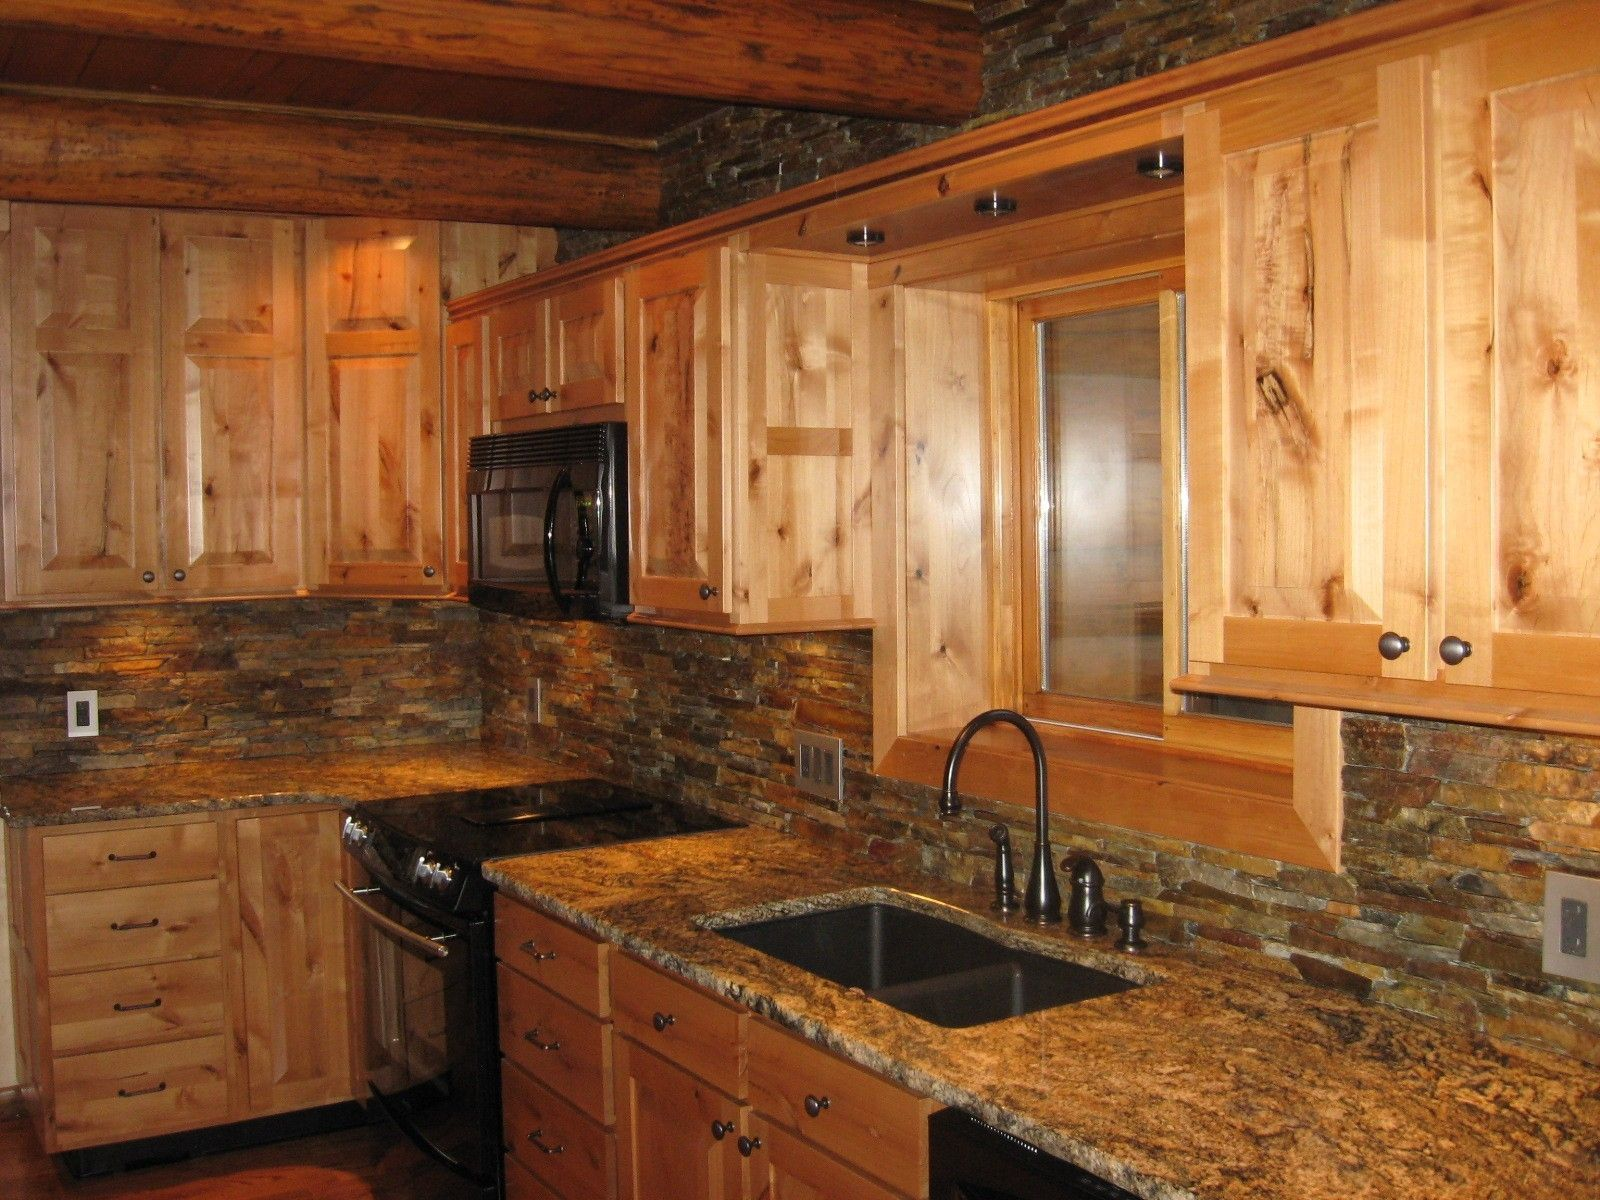 Best Knotty Alder Cabinets Has Been Featured In Many Design 640 x 480